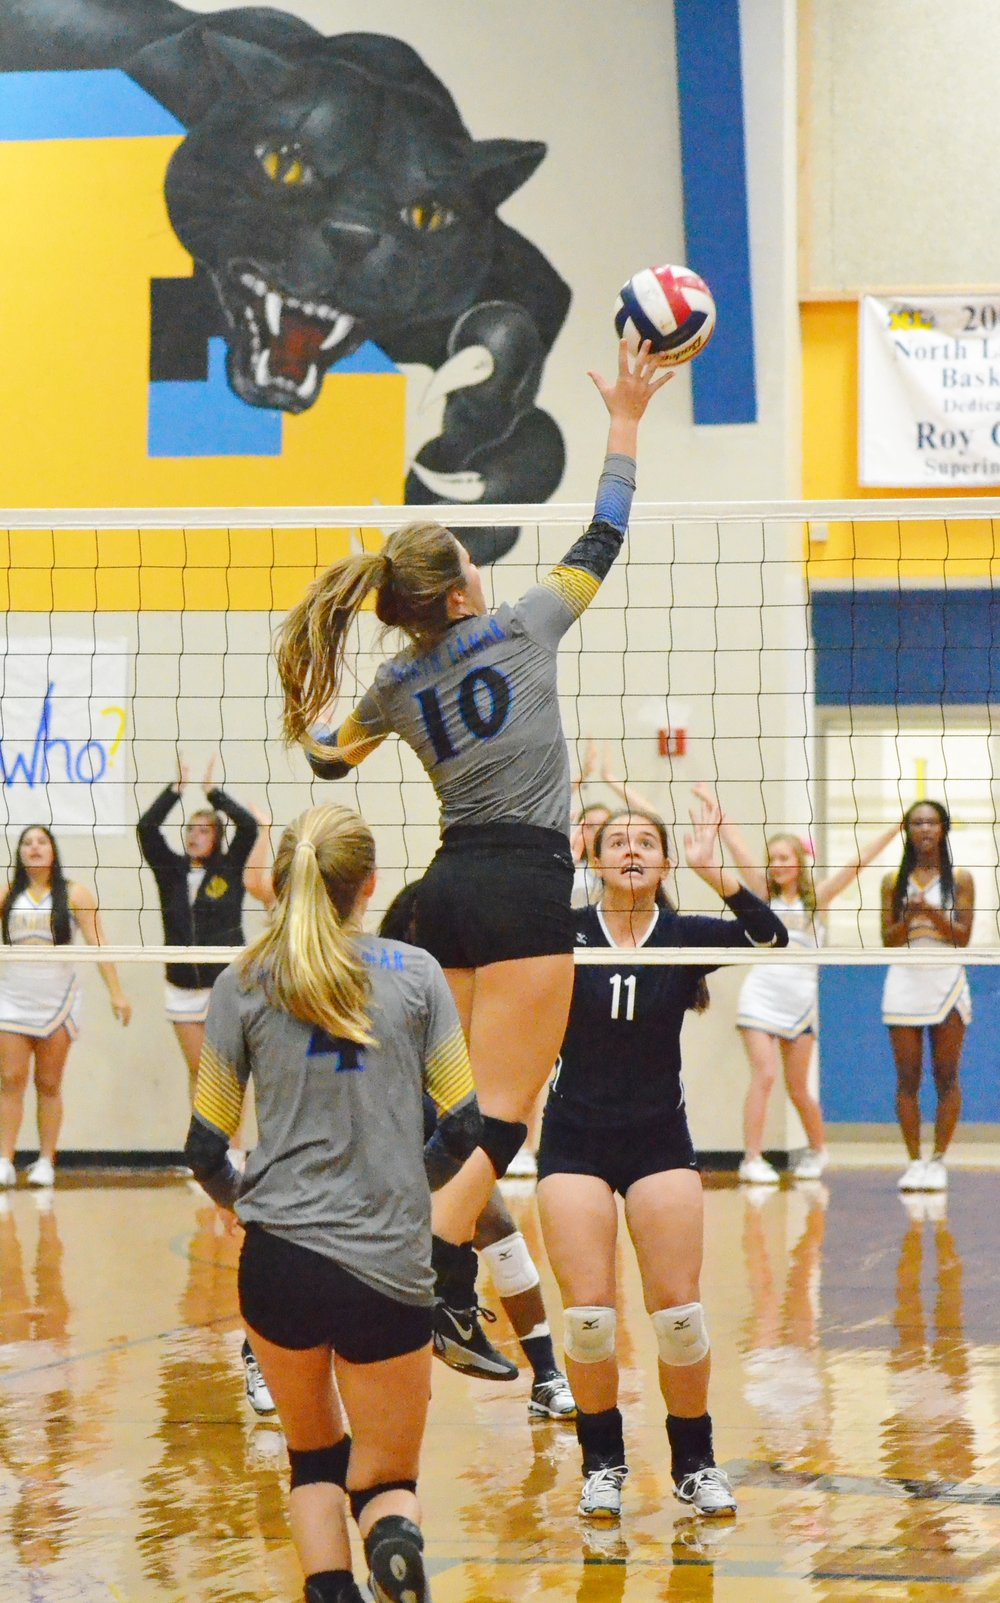 (Photo by Beverly White) Bailee Nickerson (10) hits the ball over while Karlie Ewell (4) watches.